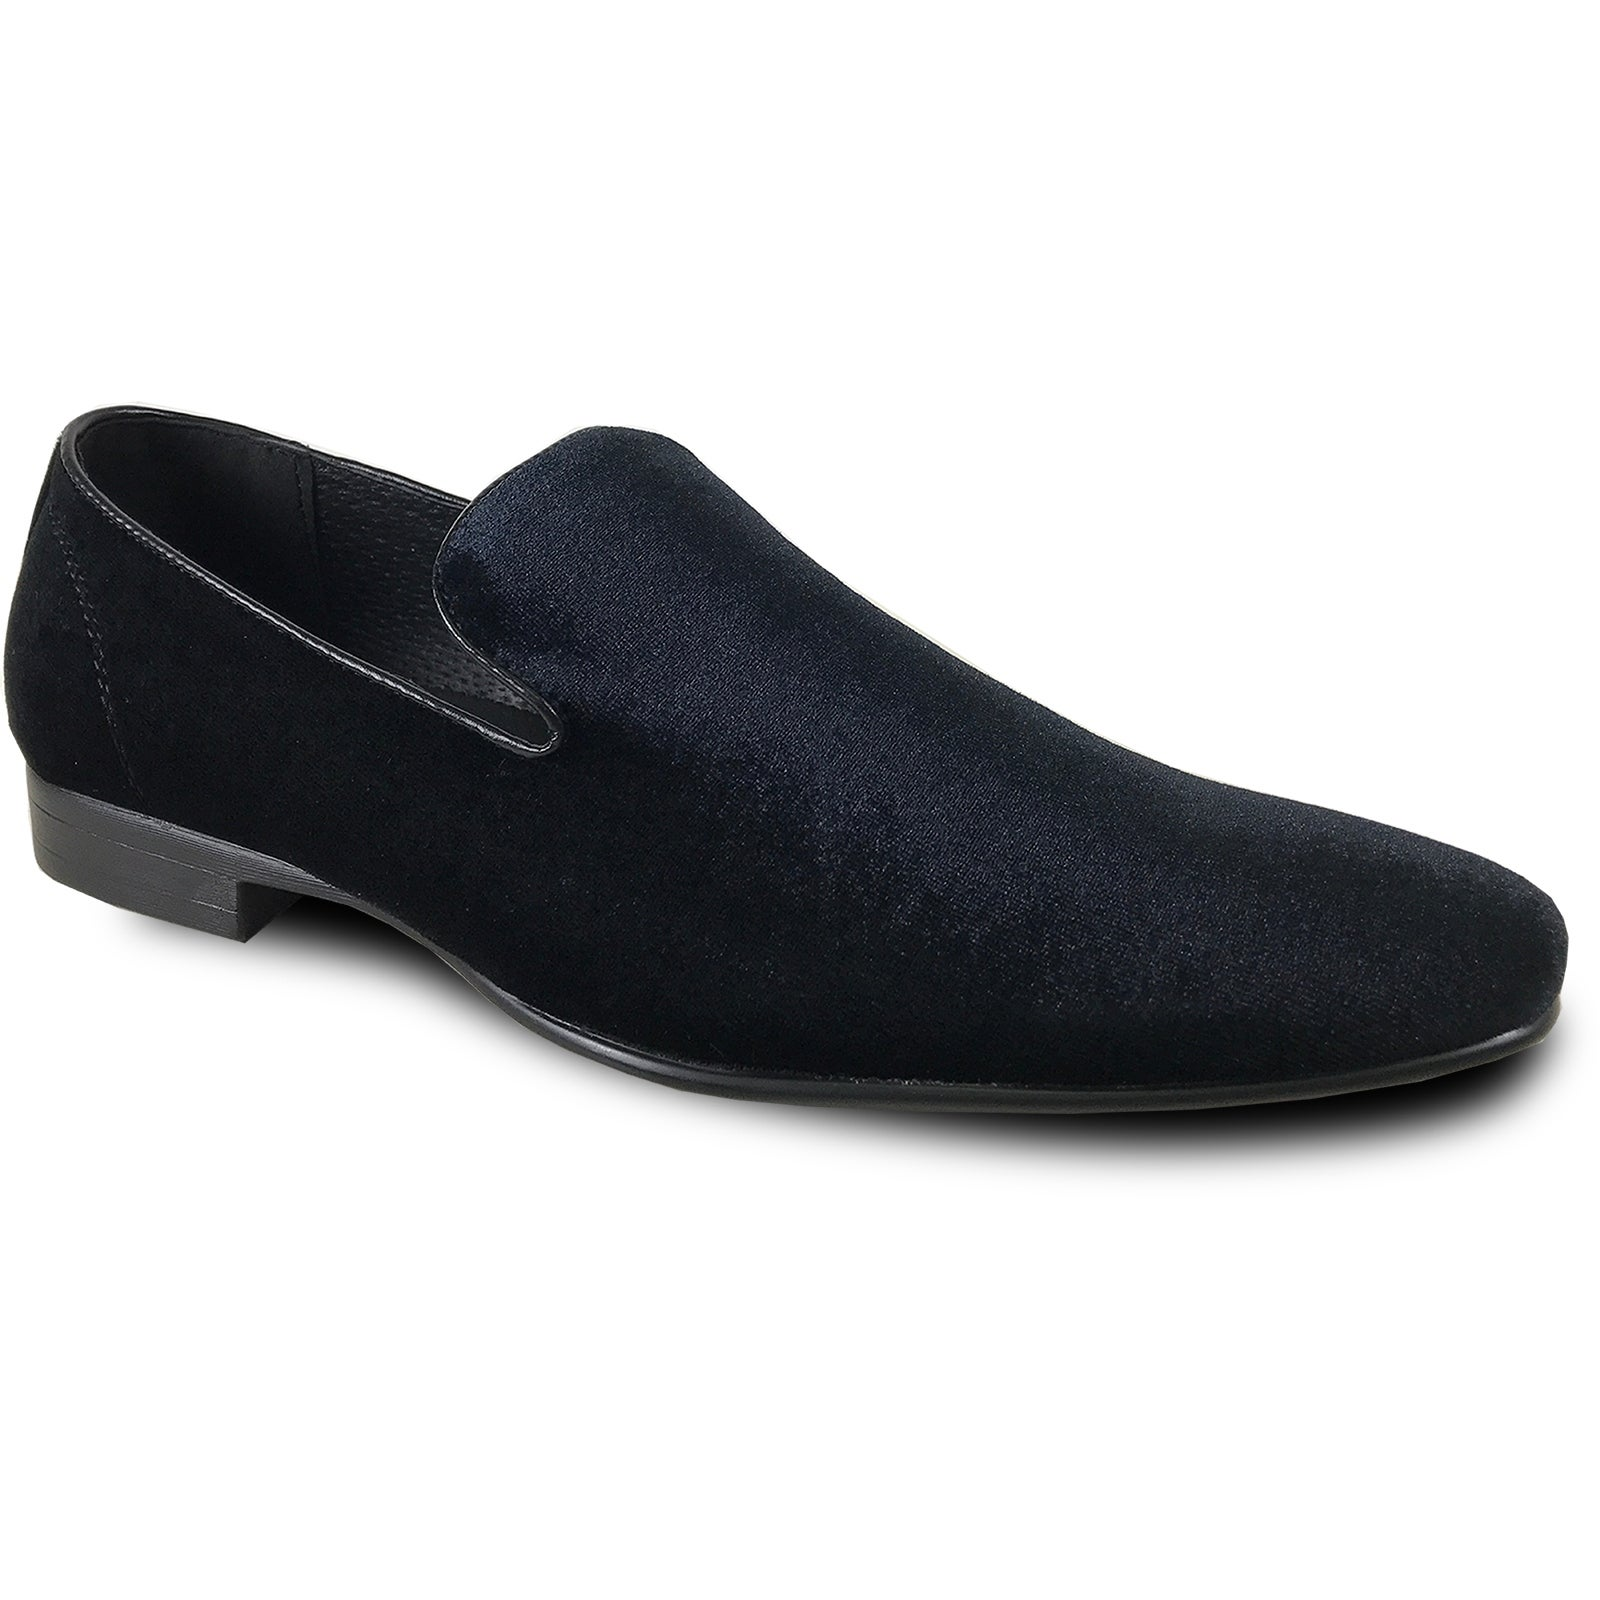 ab05136b15d Buy Size 14 Men s Loafers Online at Overstock